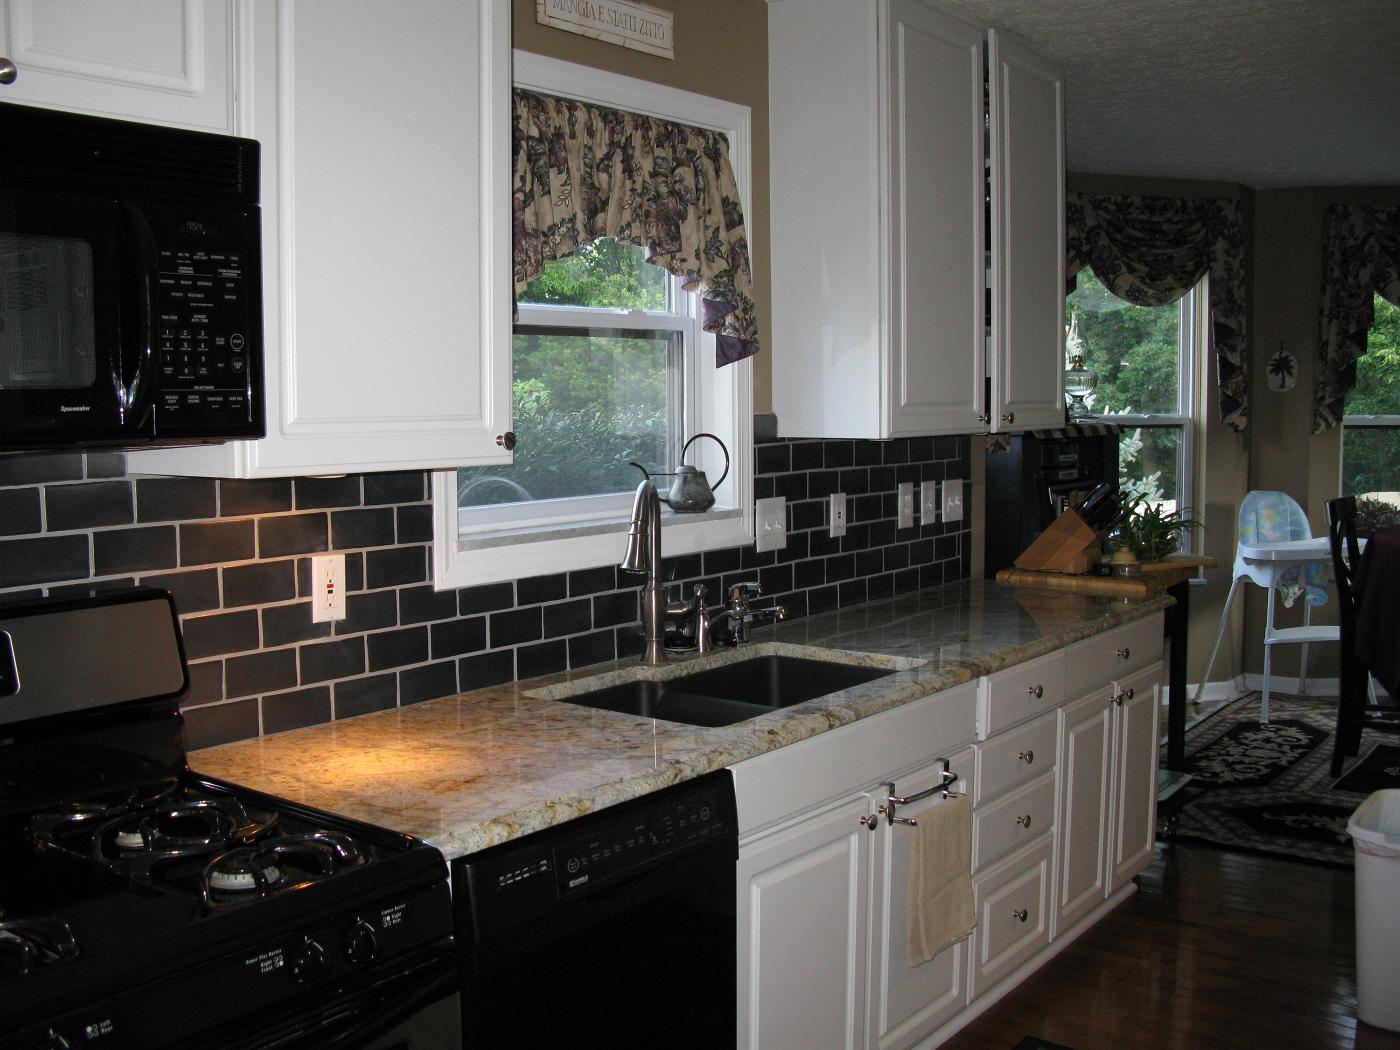 Completed Kitchen Countertops  The Granite Guy. Kitchen Arts And Pottery Greenville Sc. Kichen Quotes. Kitchen Appliances For Mobile Homes. Kitchen Colors Honey Oak Cabinets. Kitchen Bar Remodel. Kitchen Furniture Gloucestershire. Best Quality Kitchen Paint. Ikea Kitchen Knobs